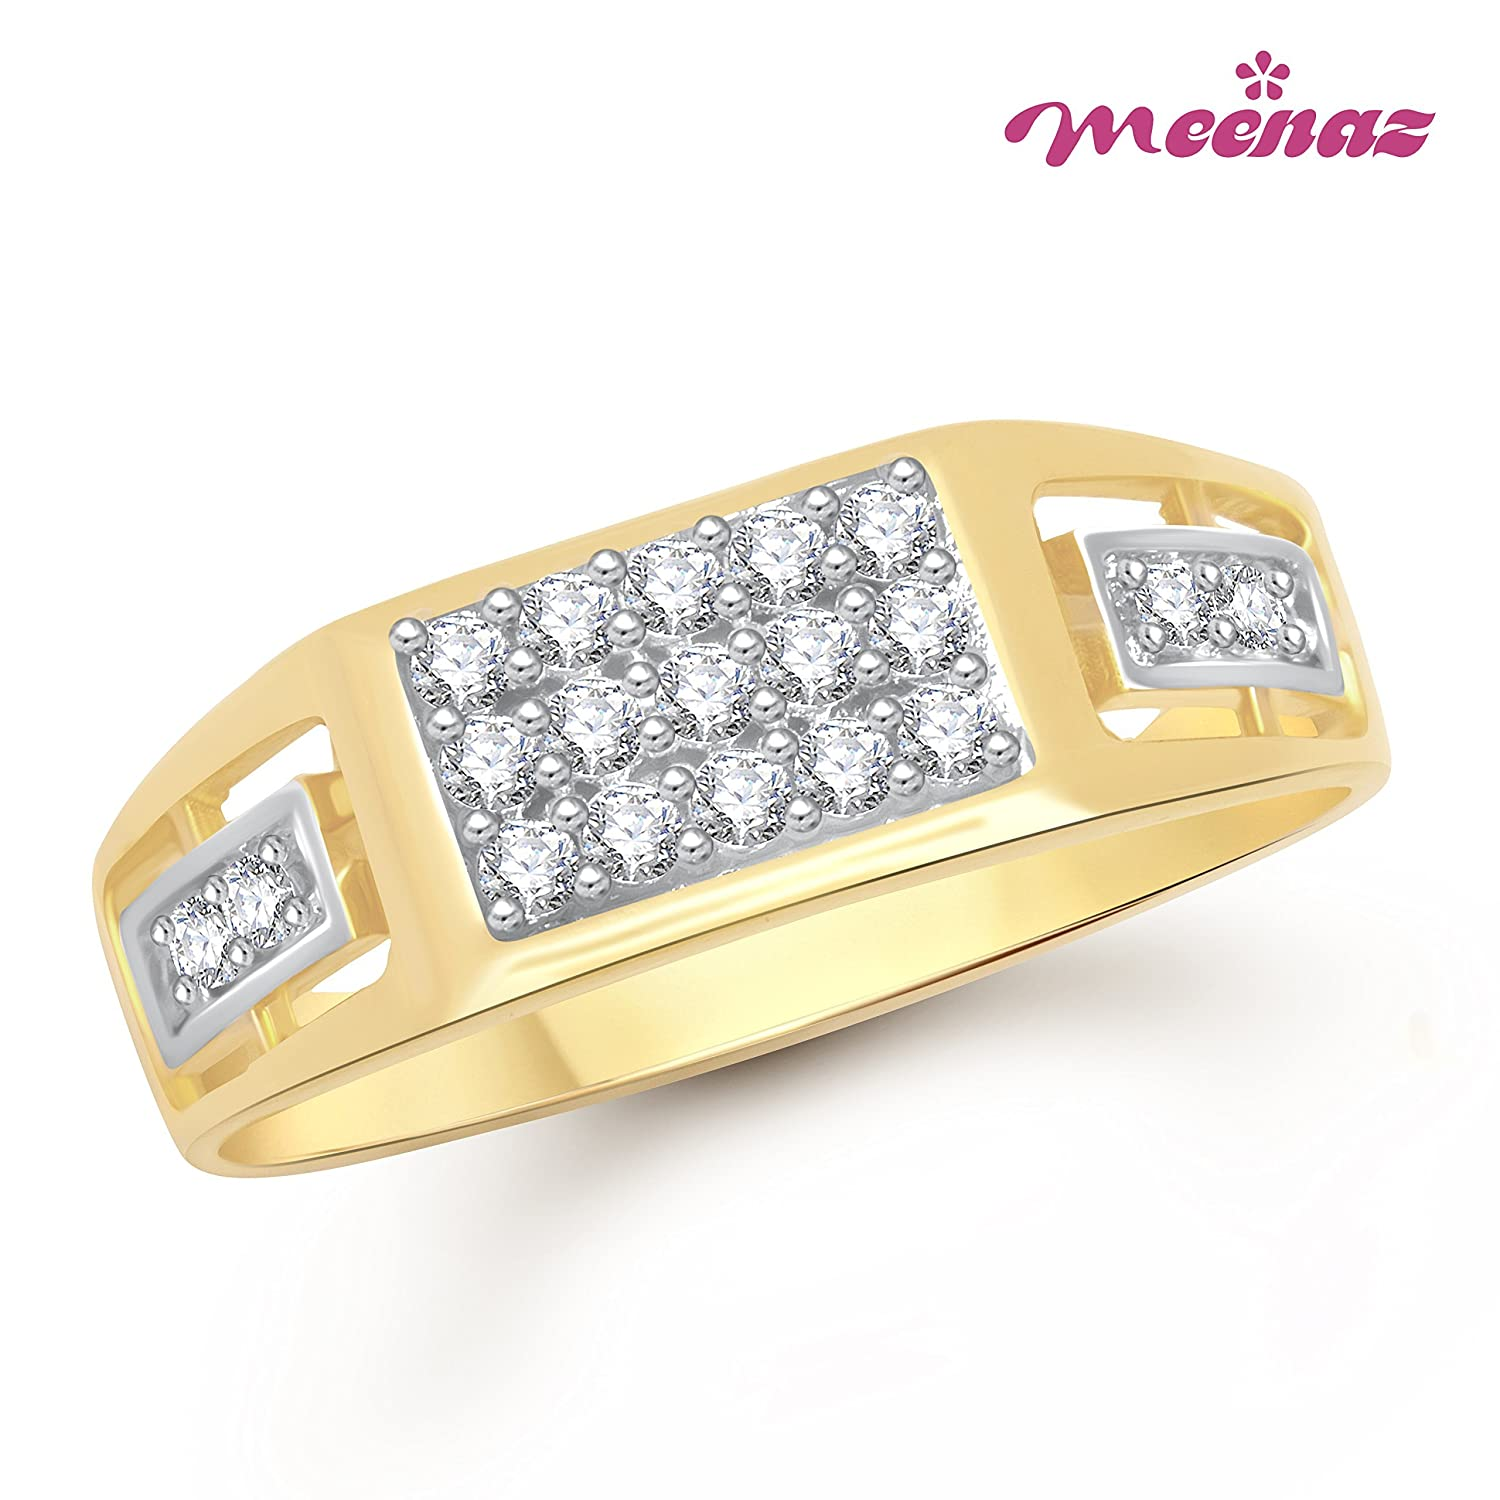 white for the bands jewellery hammered and showcase shown with ring men bi mens metal mccaul strip gold wedding smooth a rose carat s here combines goldsmiths of